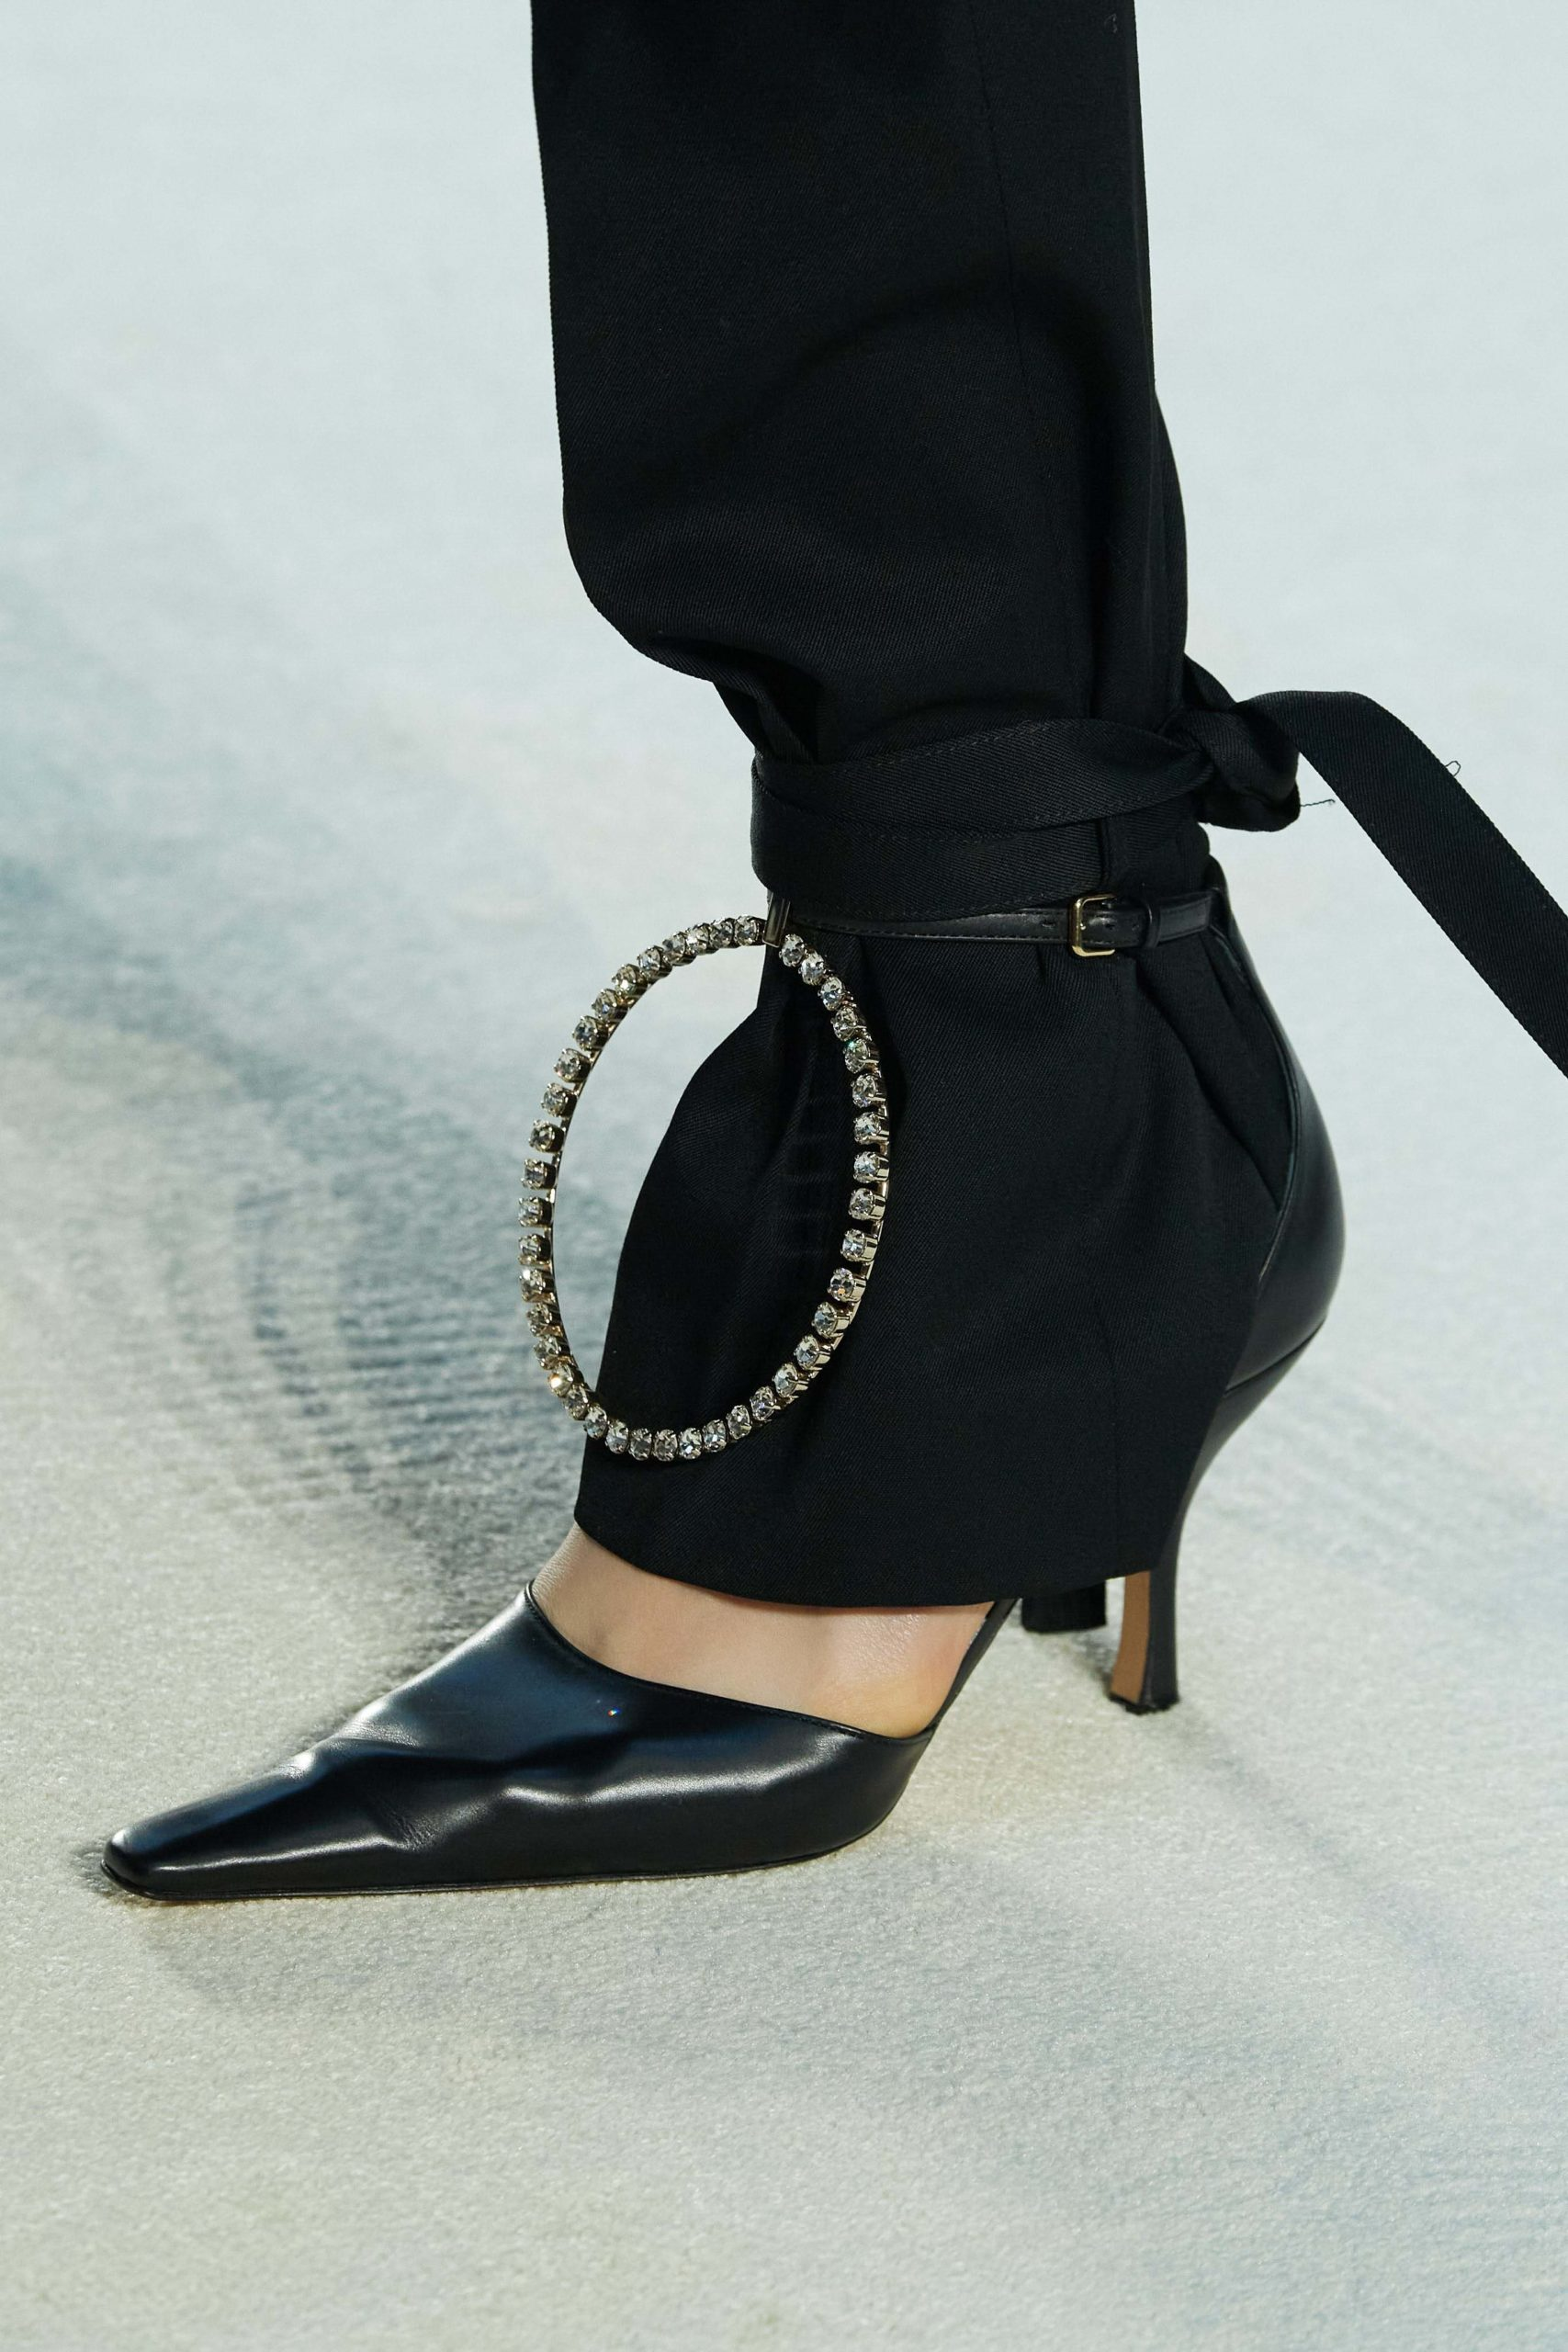 JW Anderson Mode Fall 2020 trends runway coverage Ready To Wear Vogue details shoes